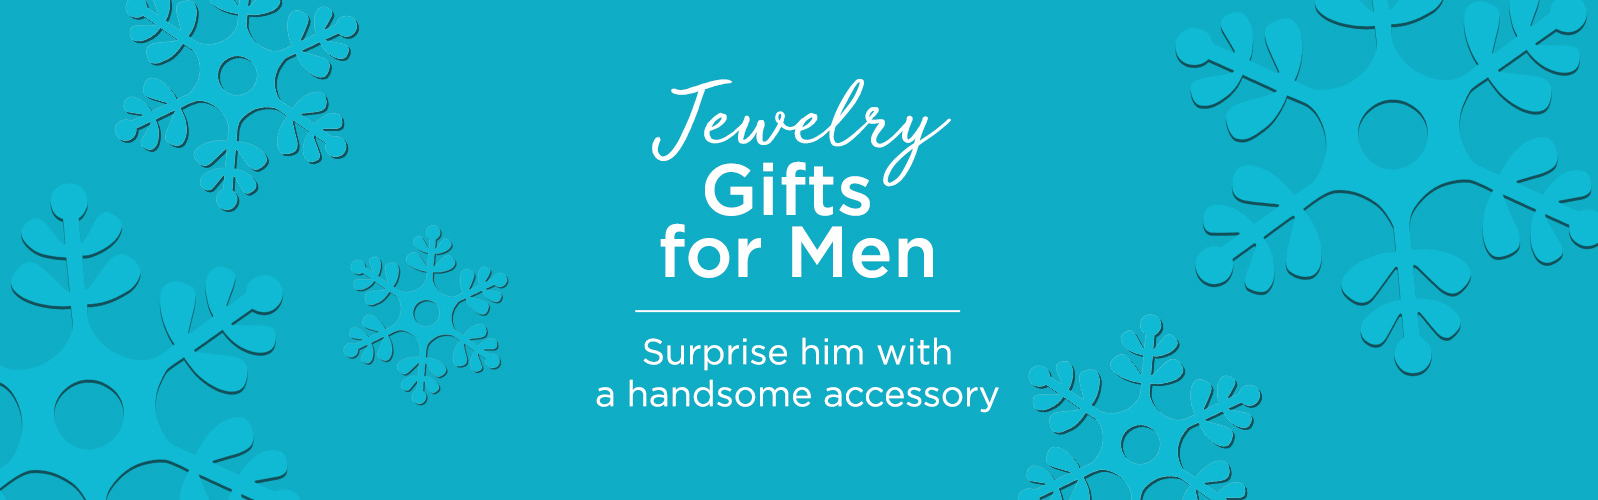 Jewelry Gifts for Men  Surprise him with a handsome accessory